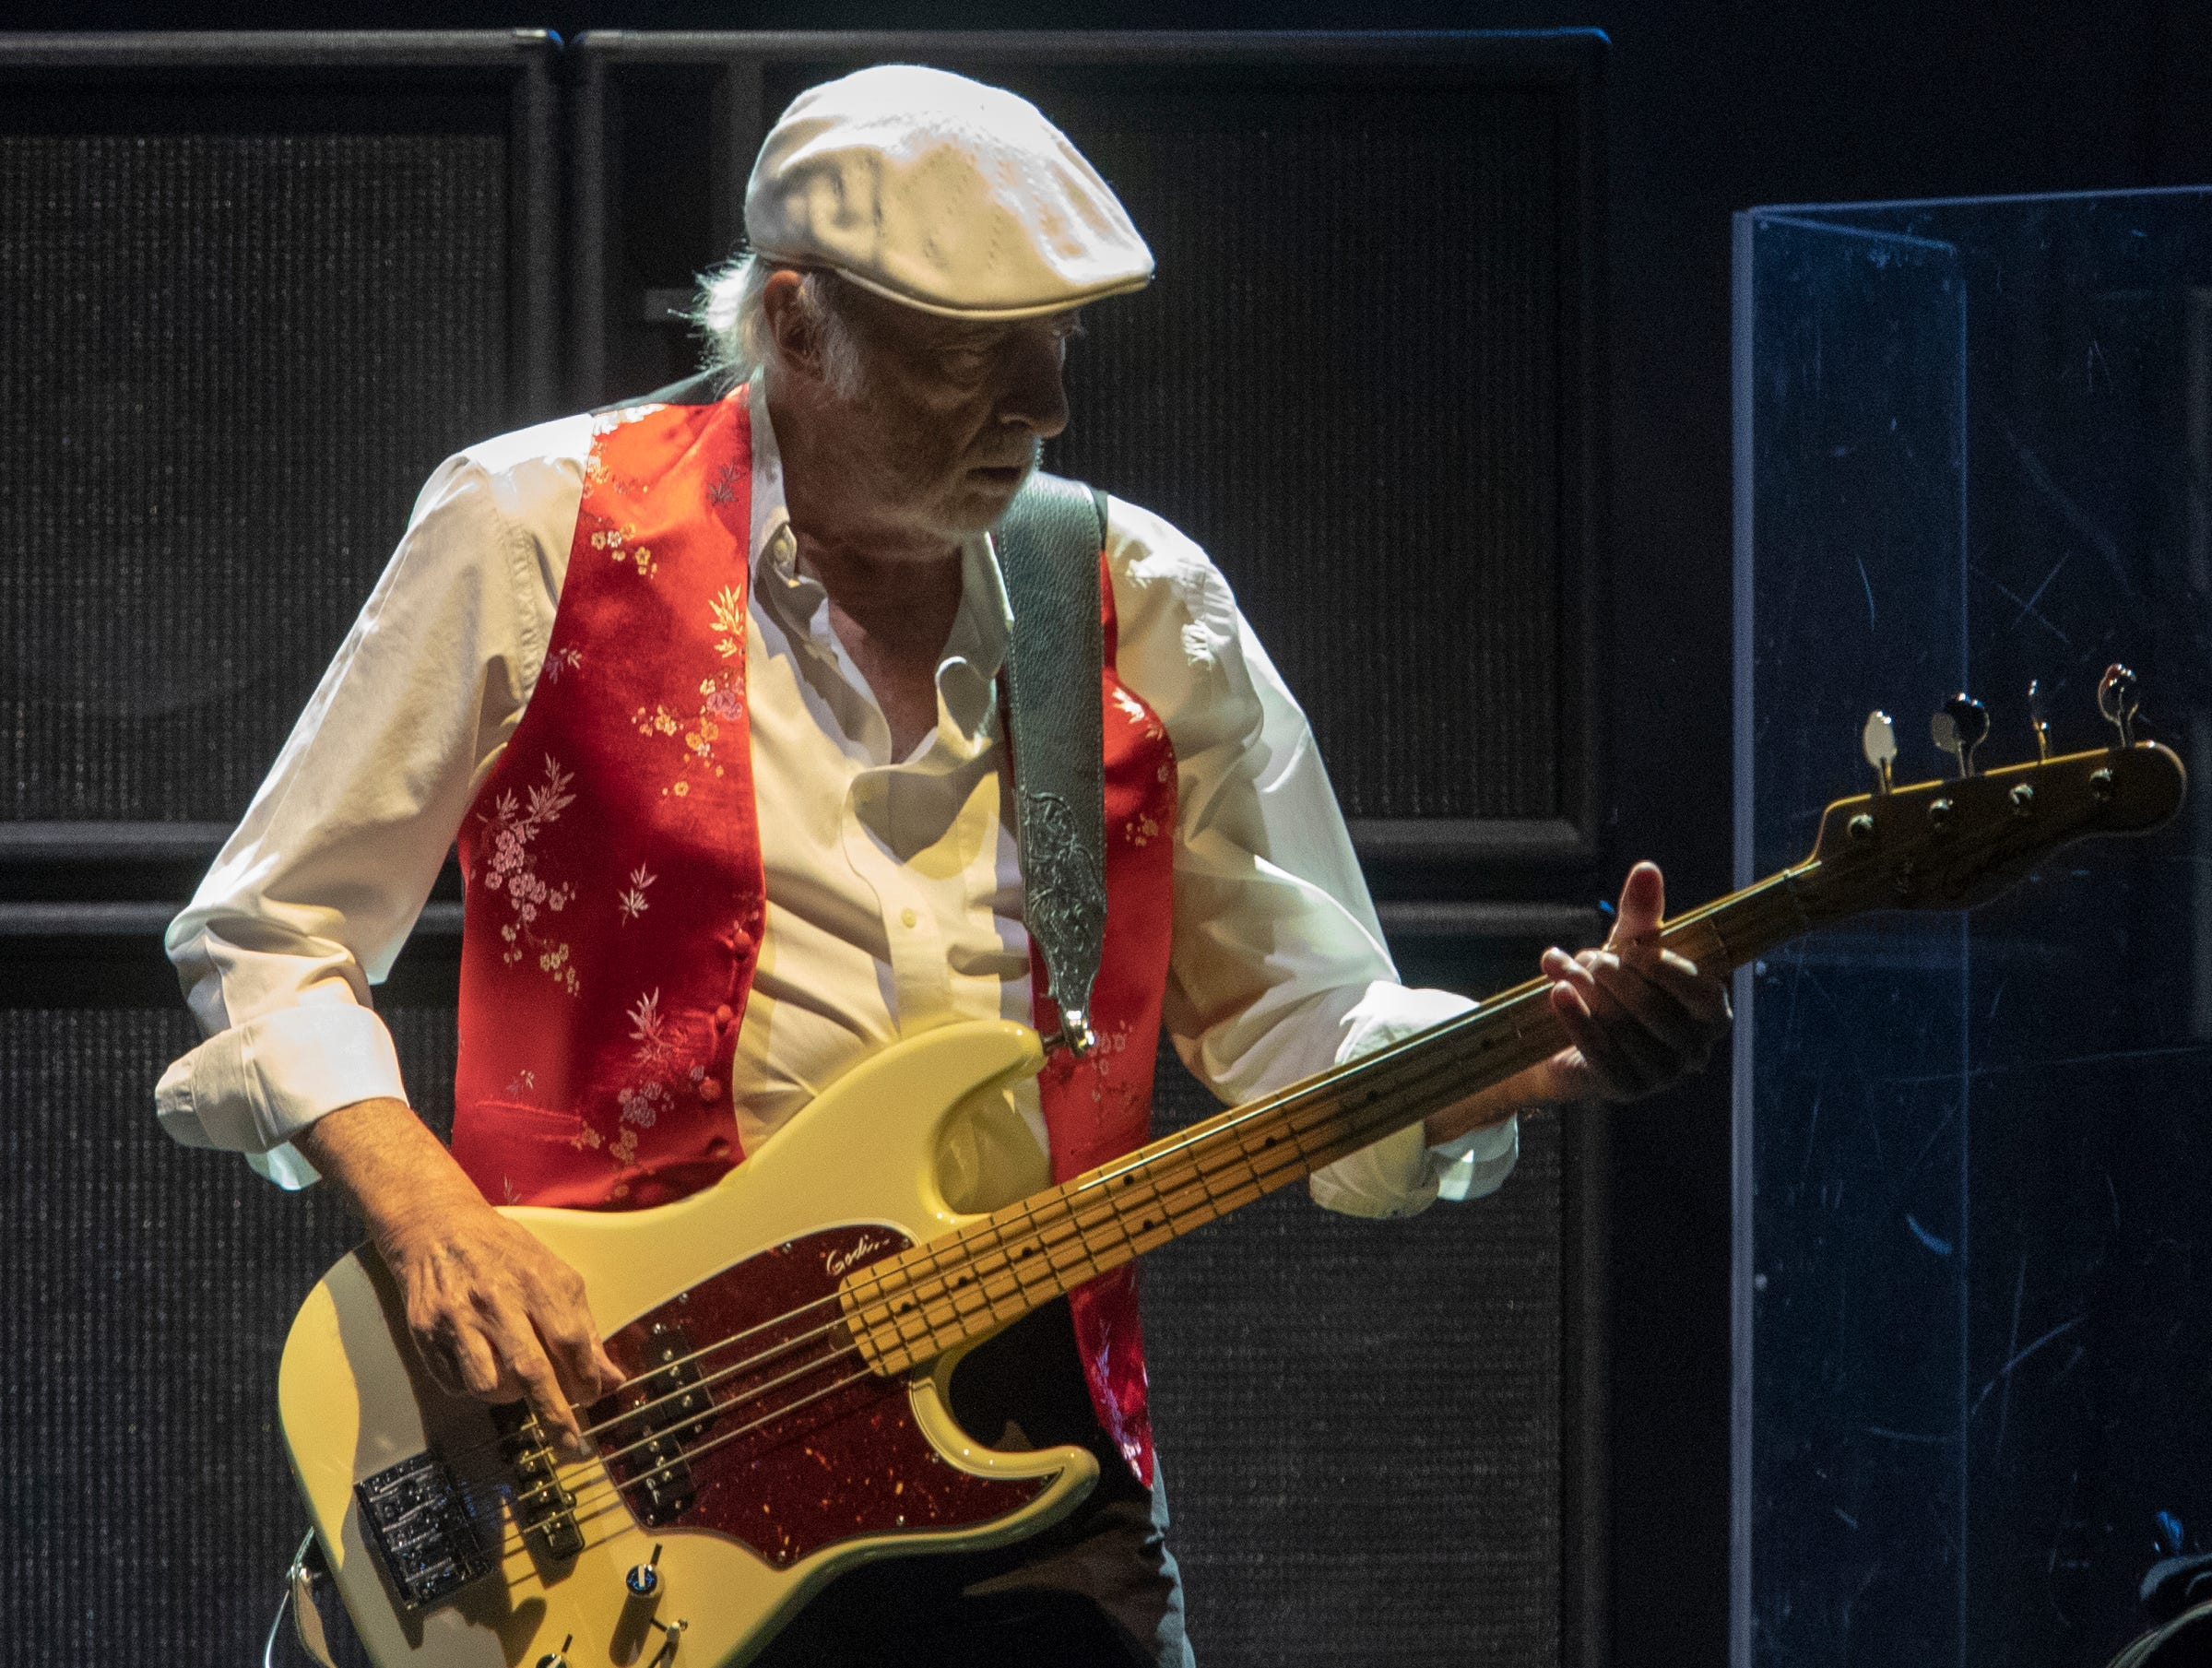 John McVie, during a performance by Fleetwood Mac at Bankers Life Fieldhouse, Indianapolis, Tuesday, Oct. 16, 2018. The band is playing on their current North American tour.